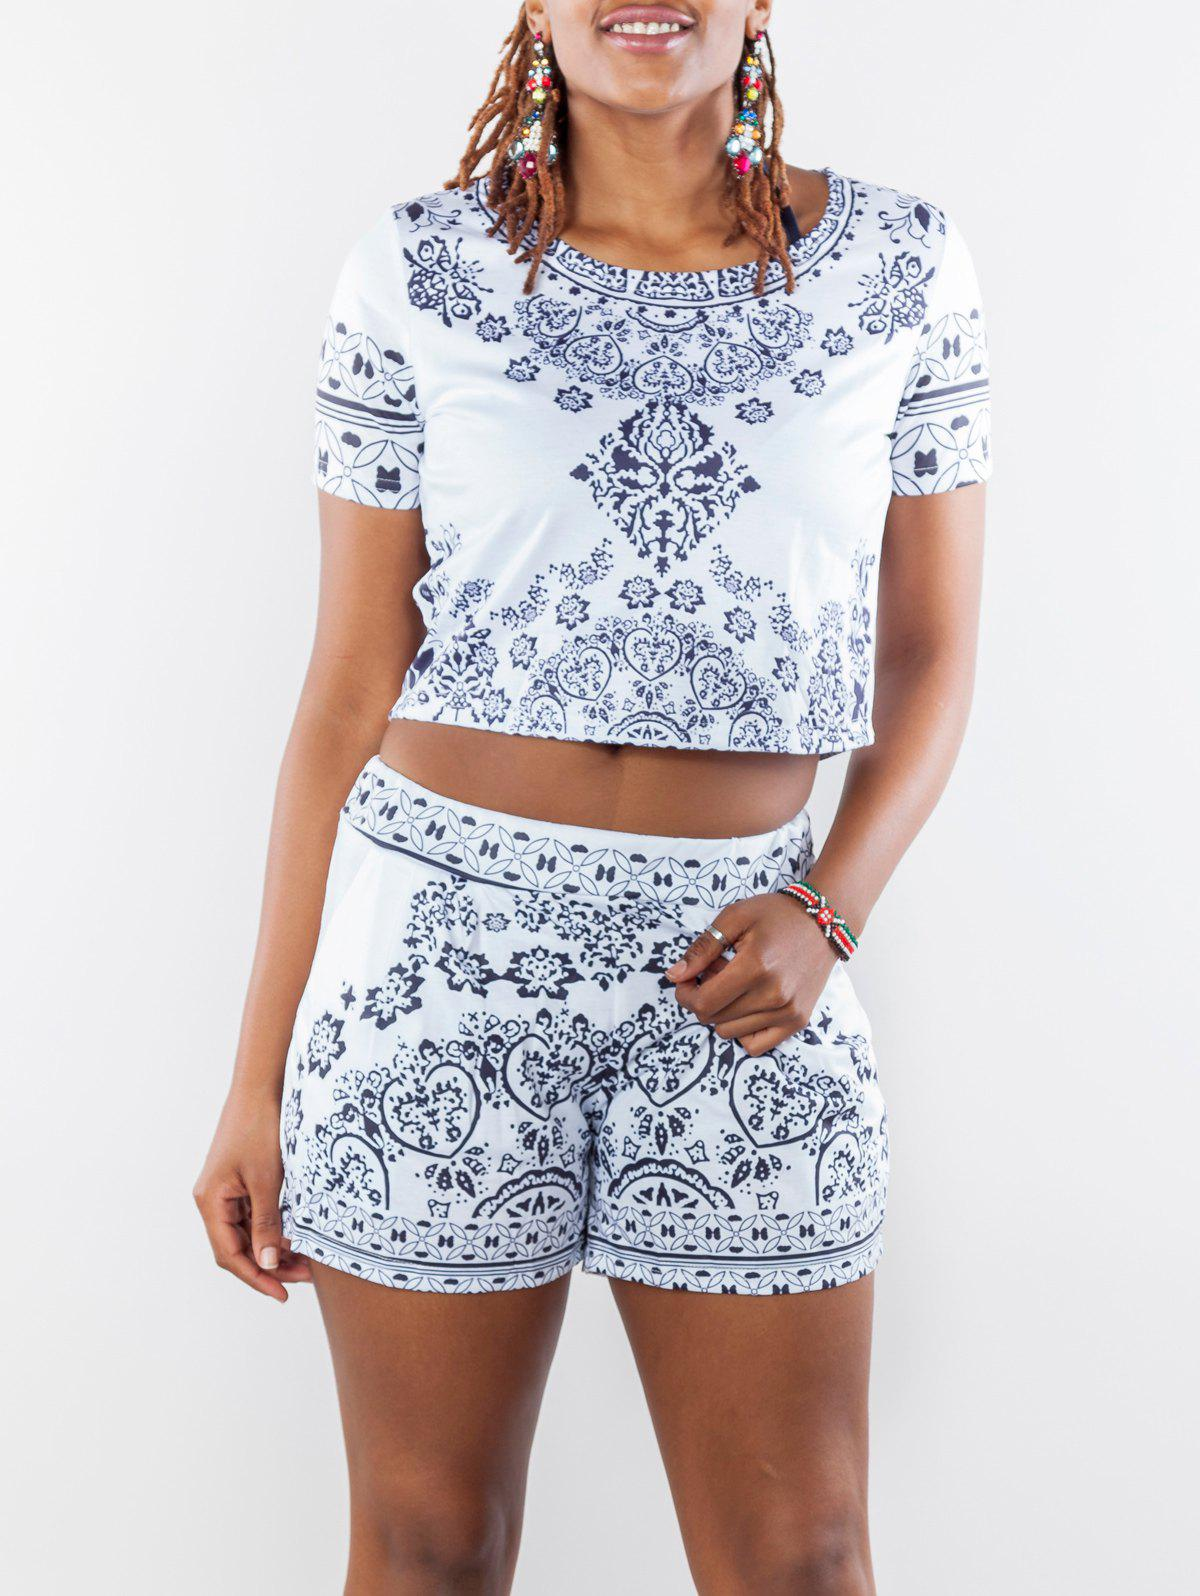 Chic Scoop Neck Short Sleeve Crop Top + Pocket Design Floral Print Shorts Twinset For Women - WHITE S